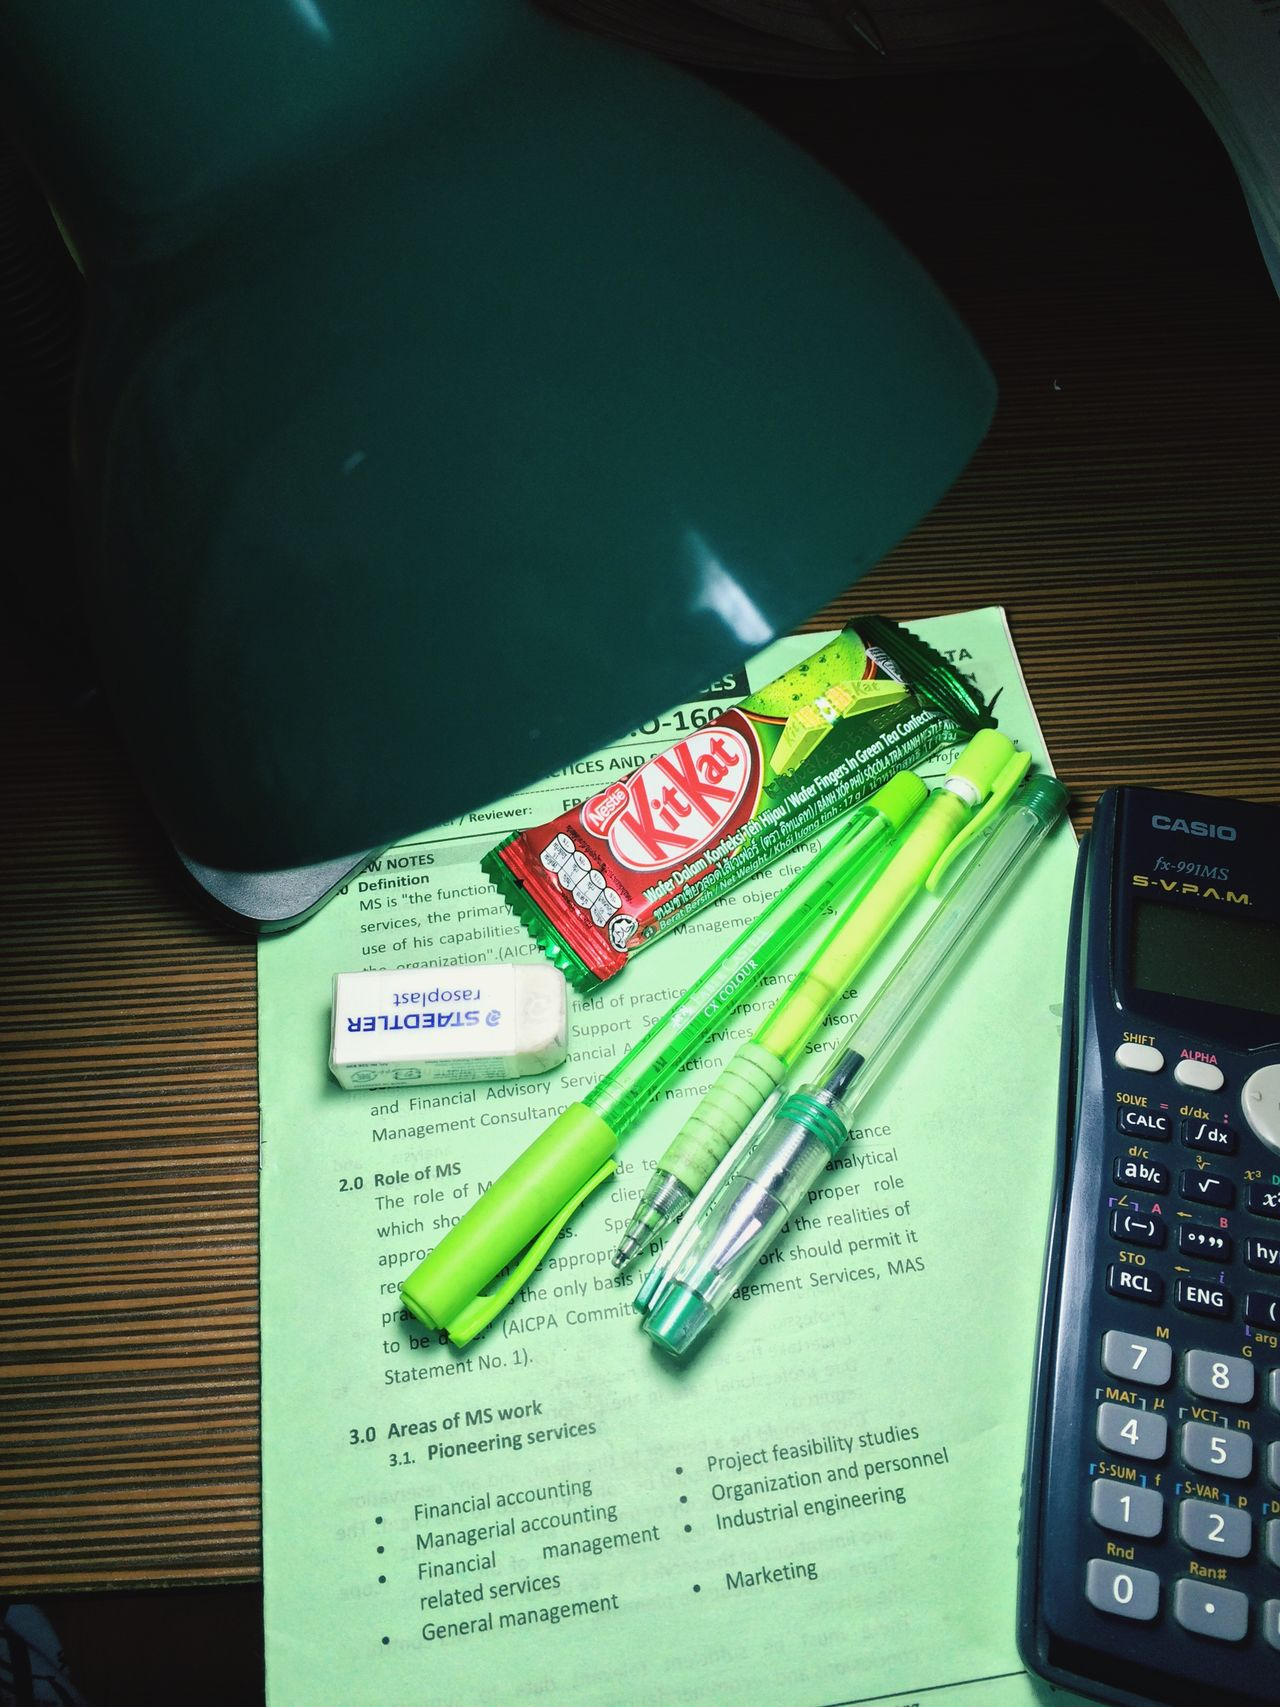 Green Pen Pencil Eraser Scool Studies Accounting Staedtler Work Hard The Color Of School Multi Colored